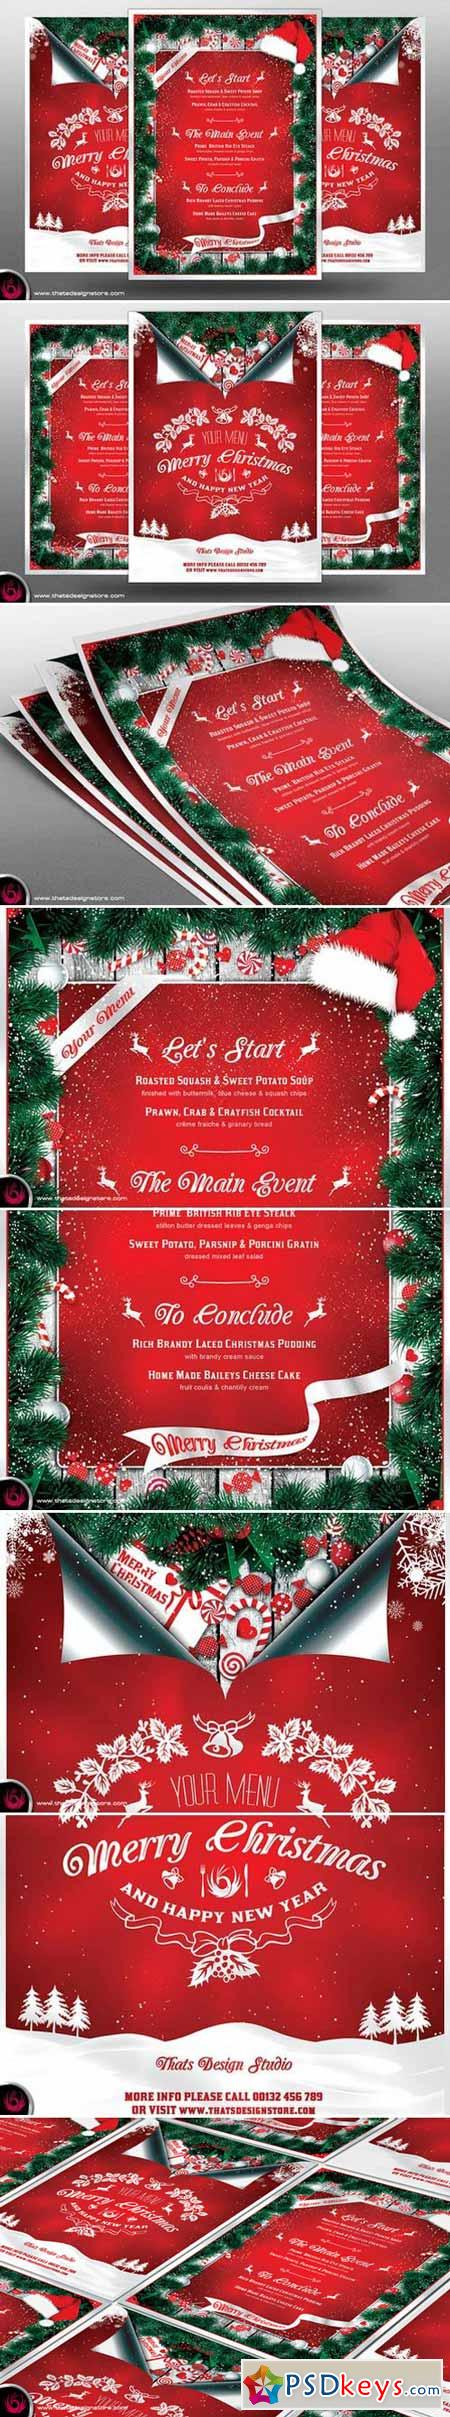 Christmas Menu Template V6 406444